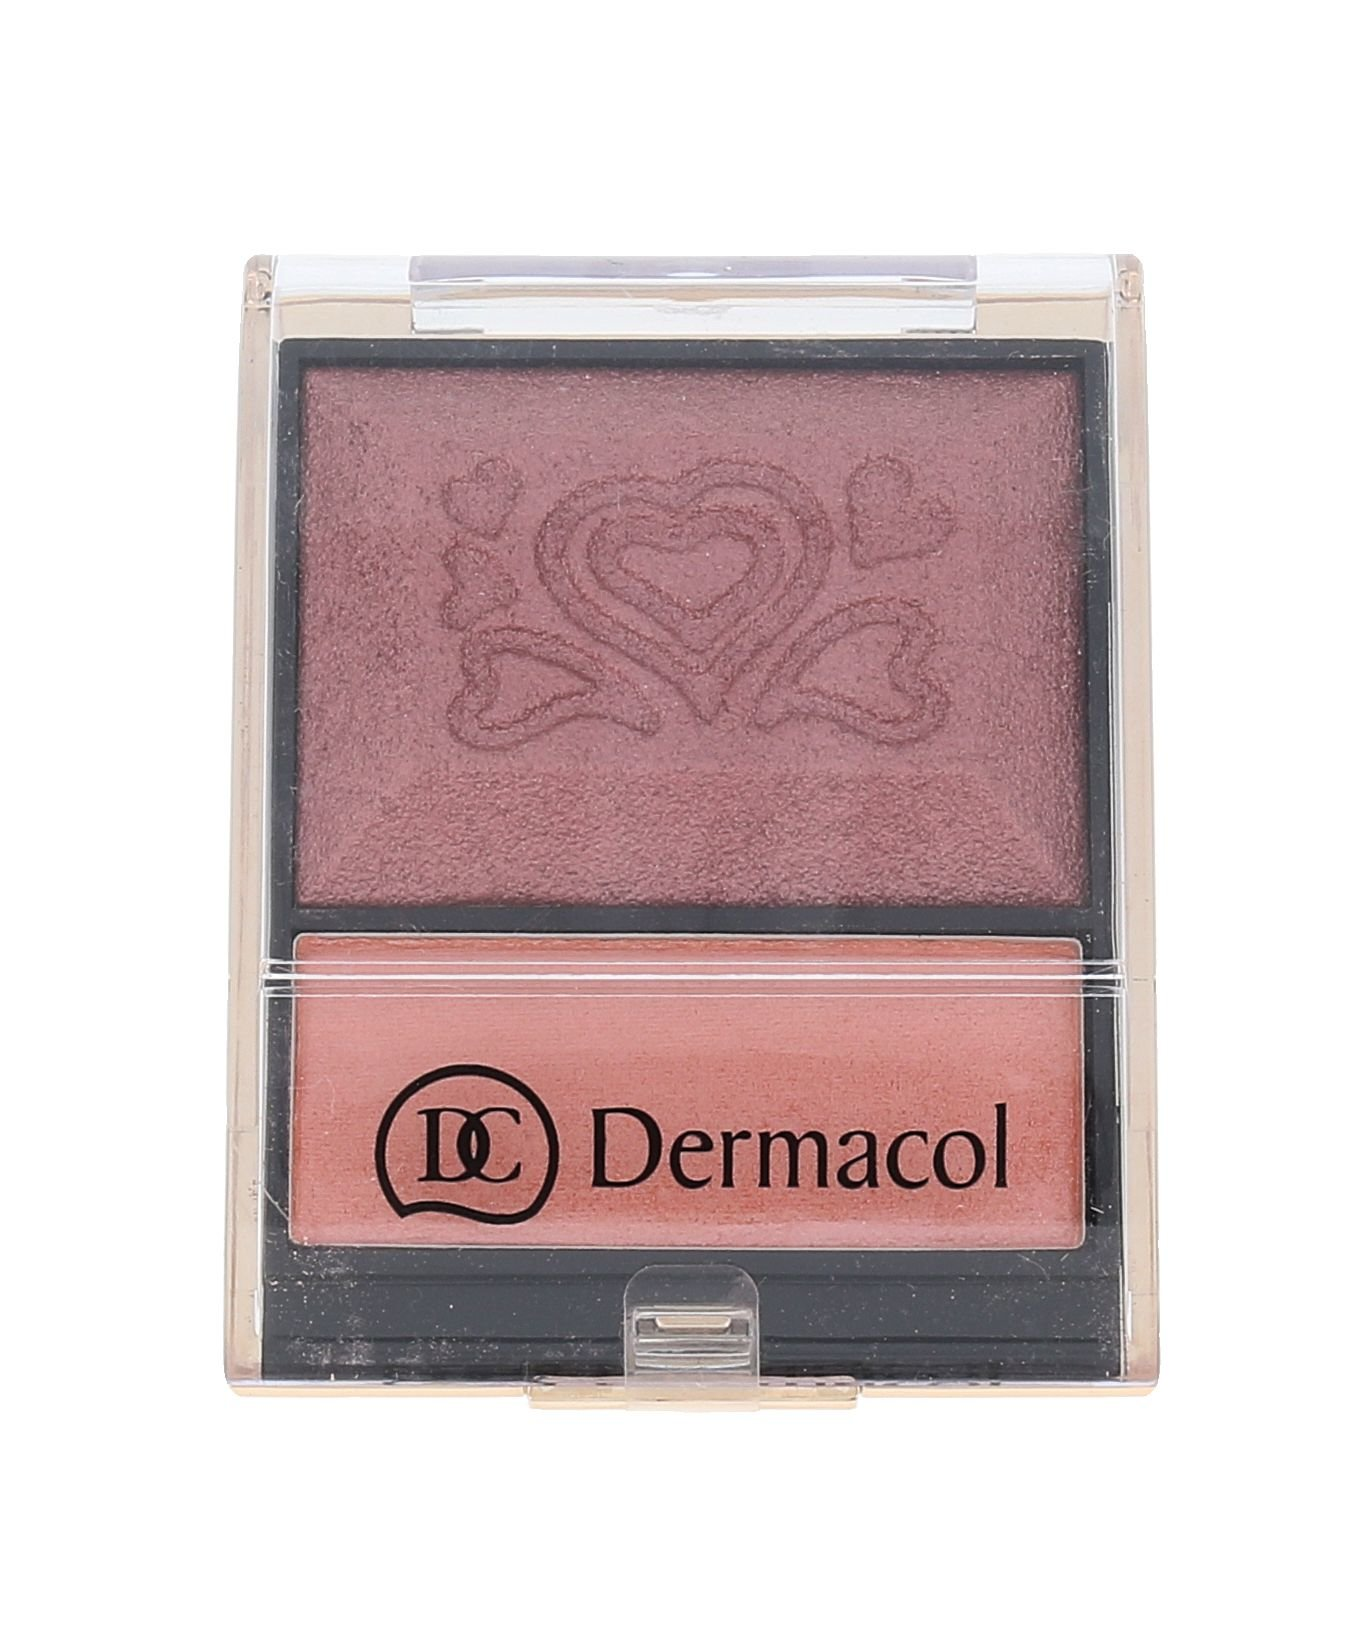 Dermacol Blush & Illuminator Cosmetic 9ml 4